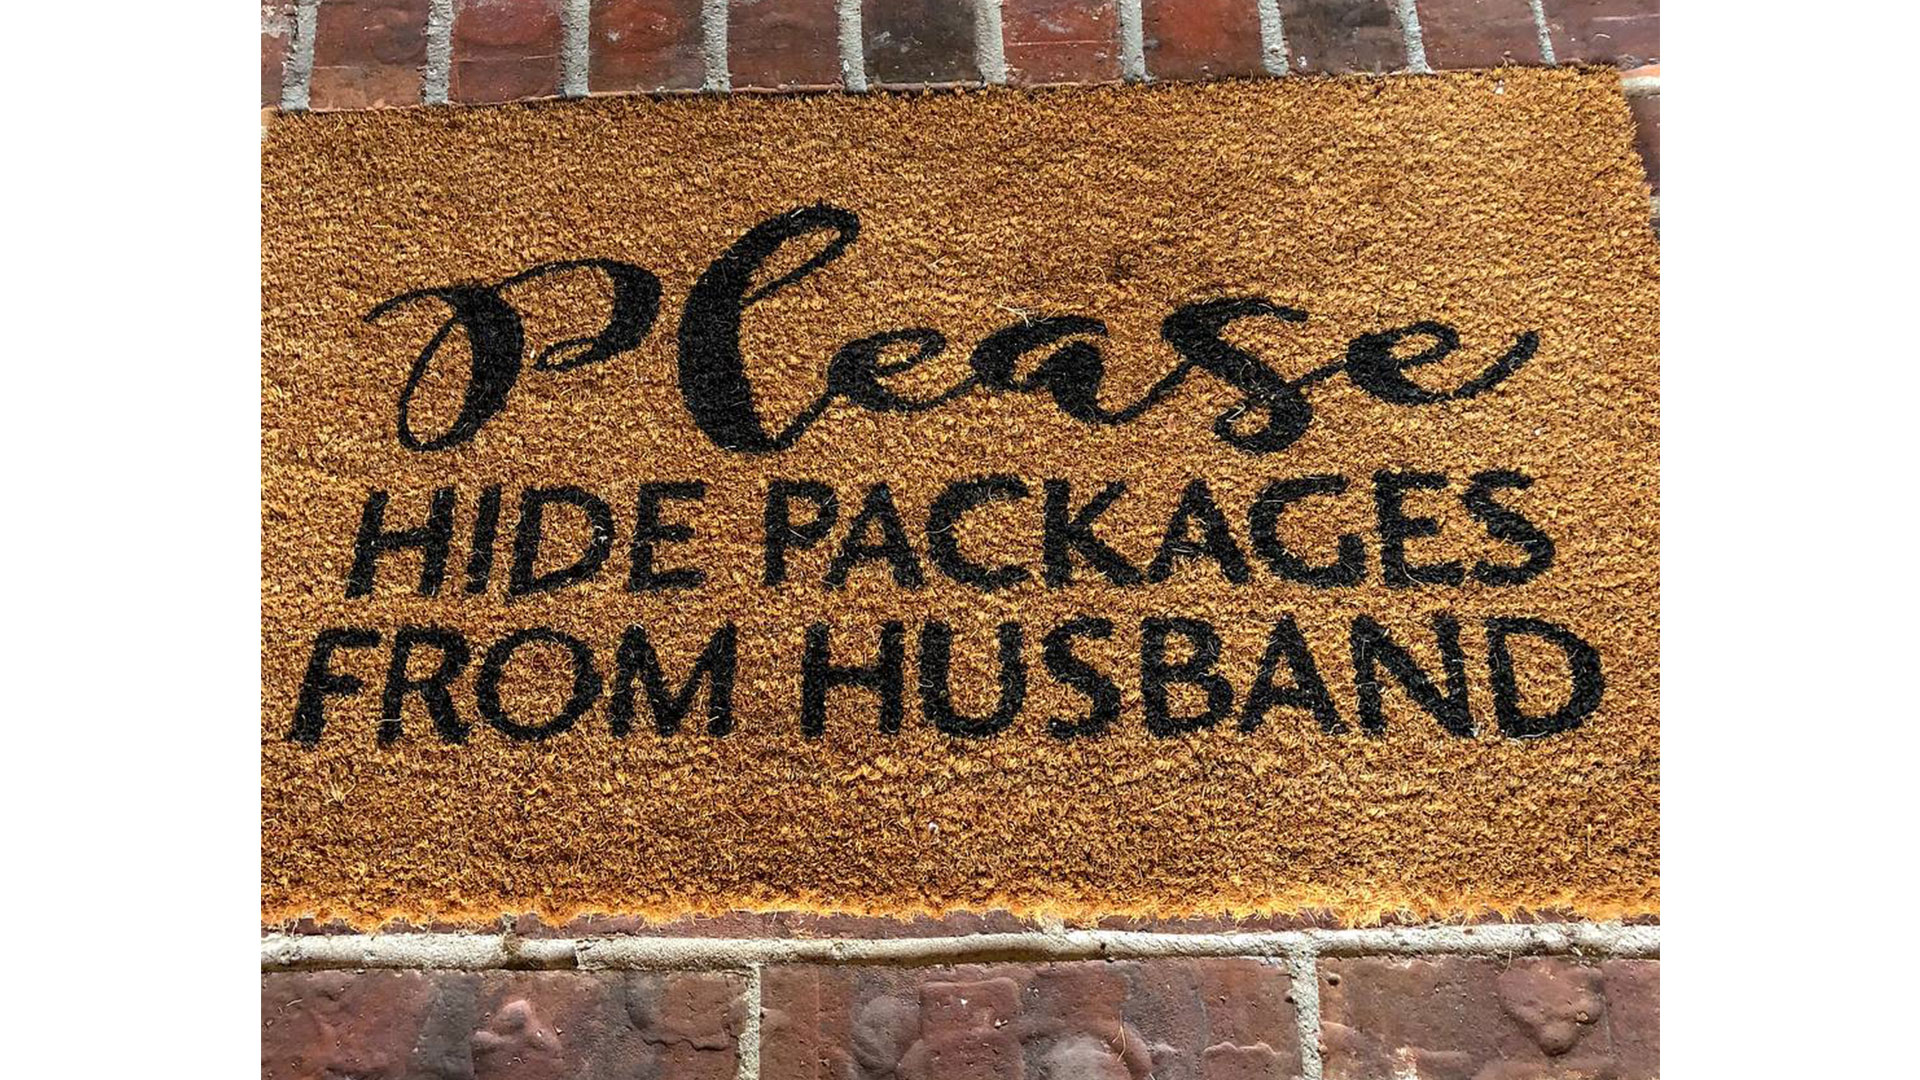 Viral Amazon Delivery Doormat